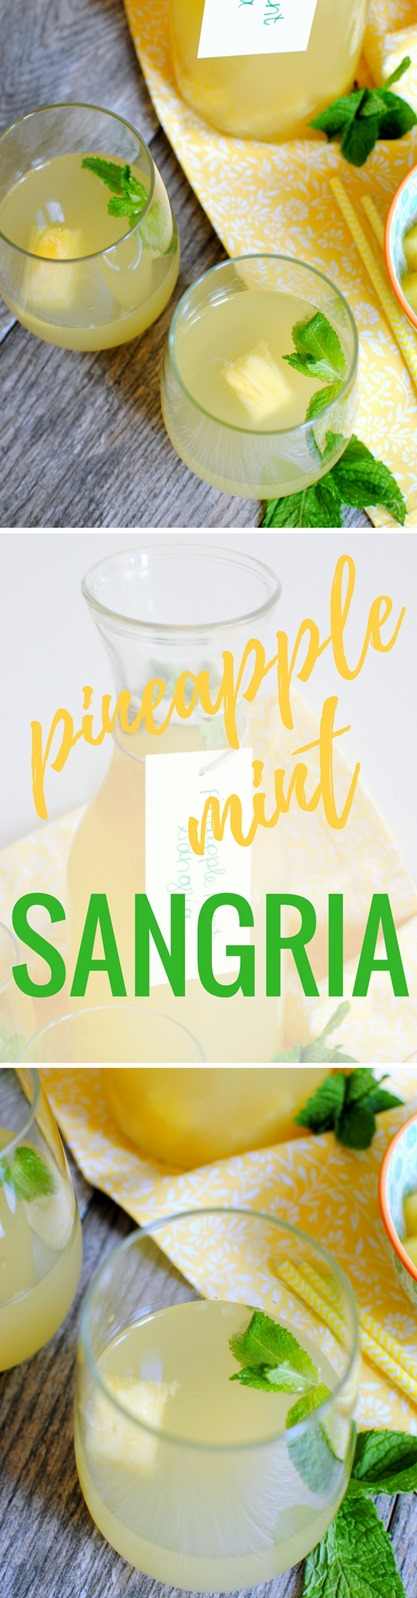 Pineapple Mint Sangria